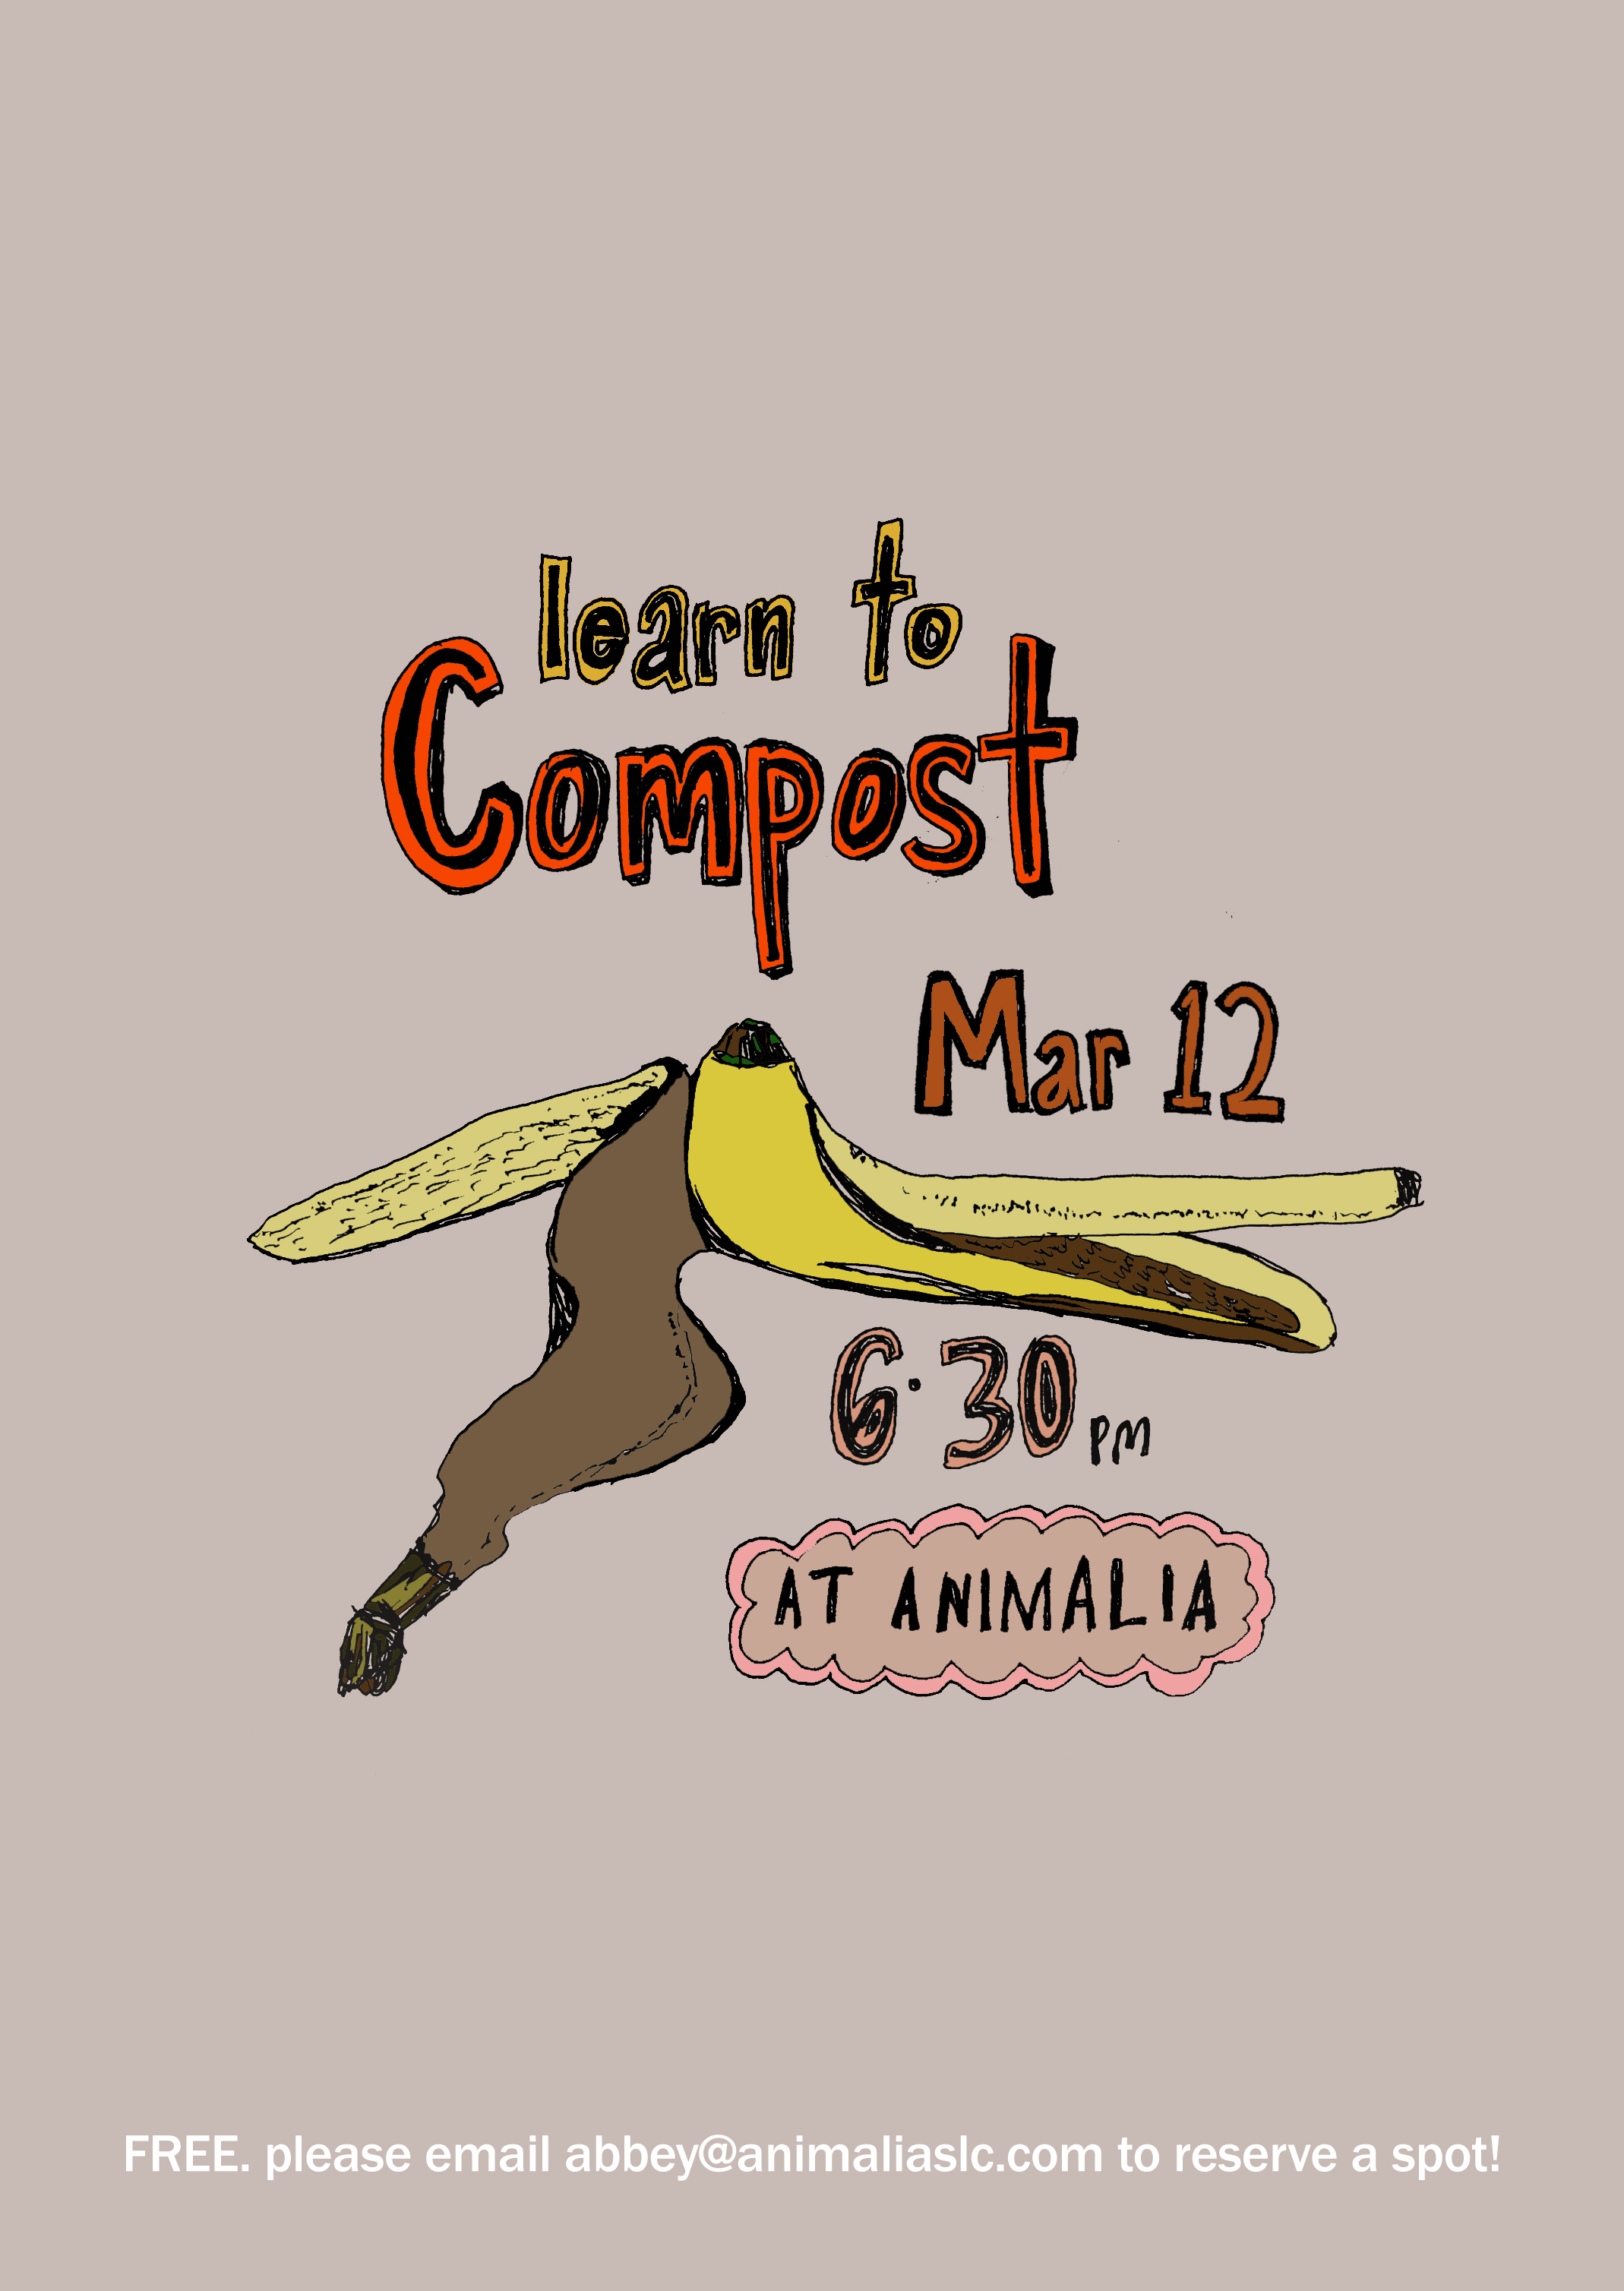 CLASS IS FULL! STAY TUNED FOR UPCOMING EVENTS BY FOLLOWING US ON INSTAGRAM @ANIMALIASHOPSLC